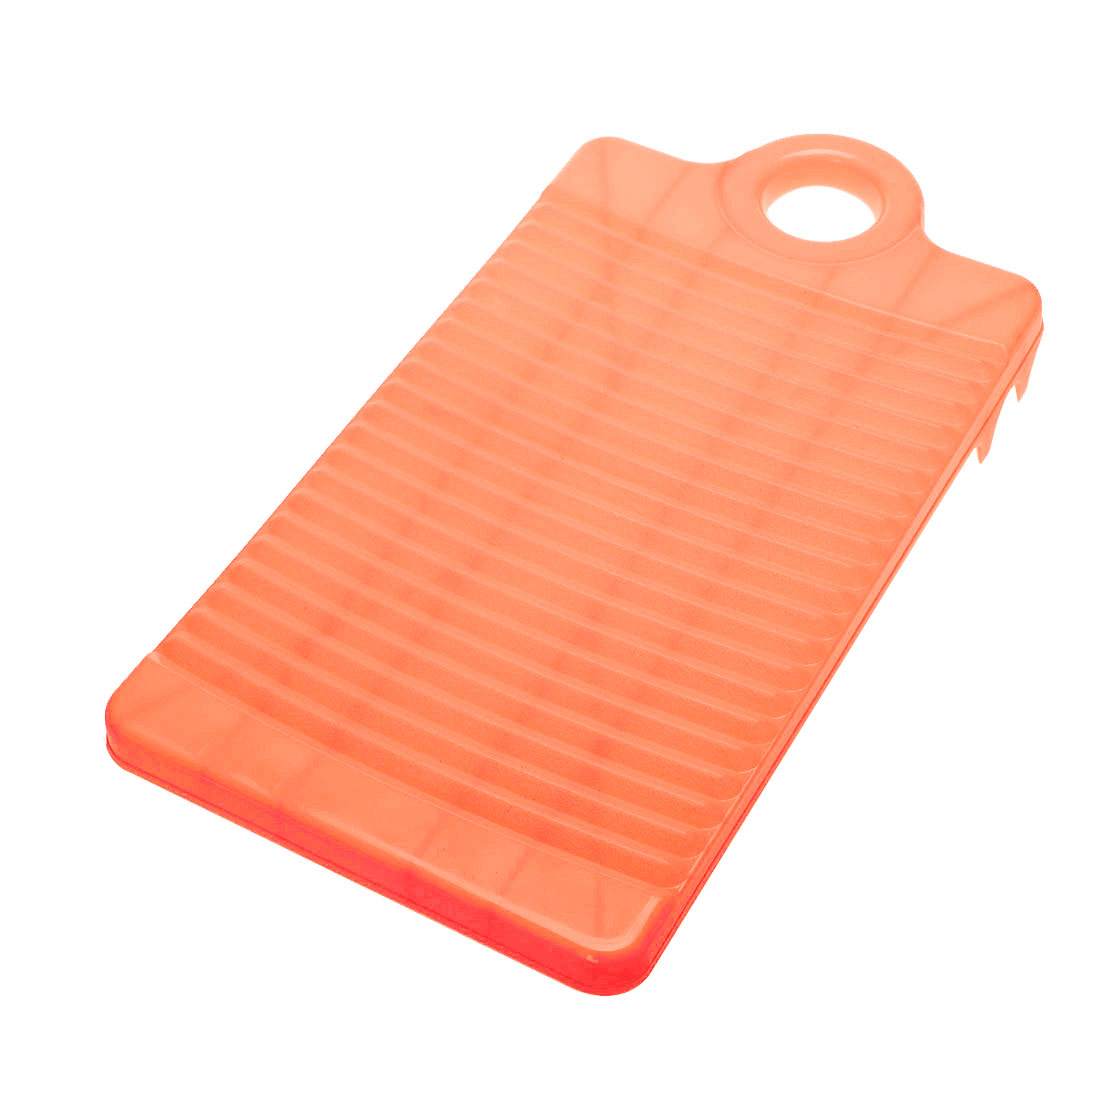 32cm Long Plastic Rectangle Washboard Washing Clothes Laundry Board Pink